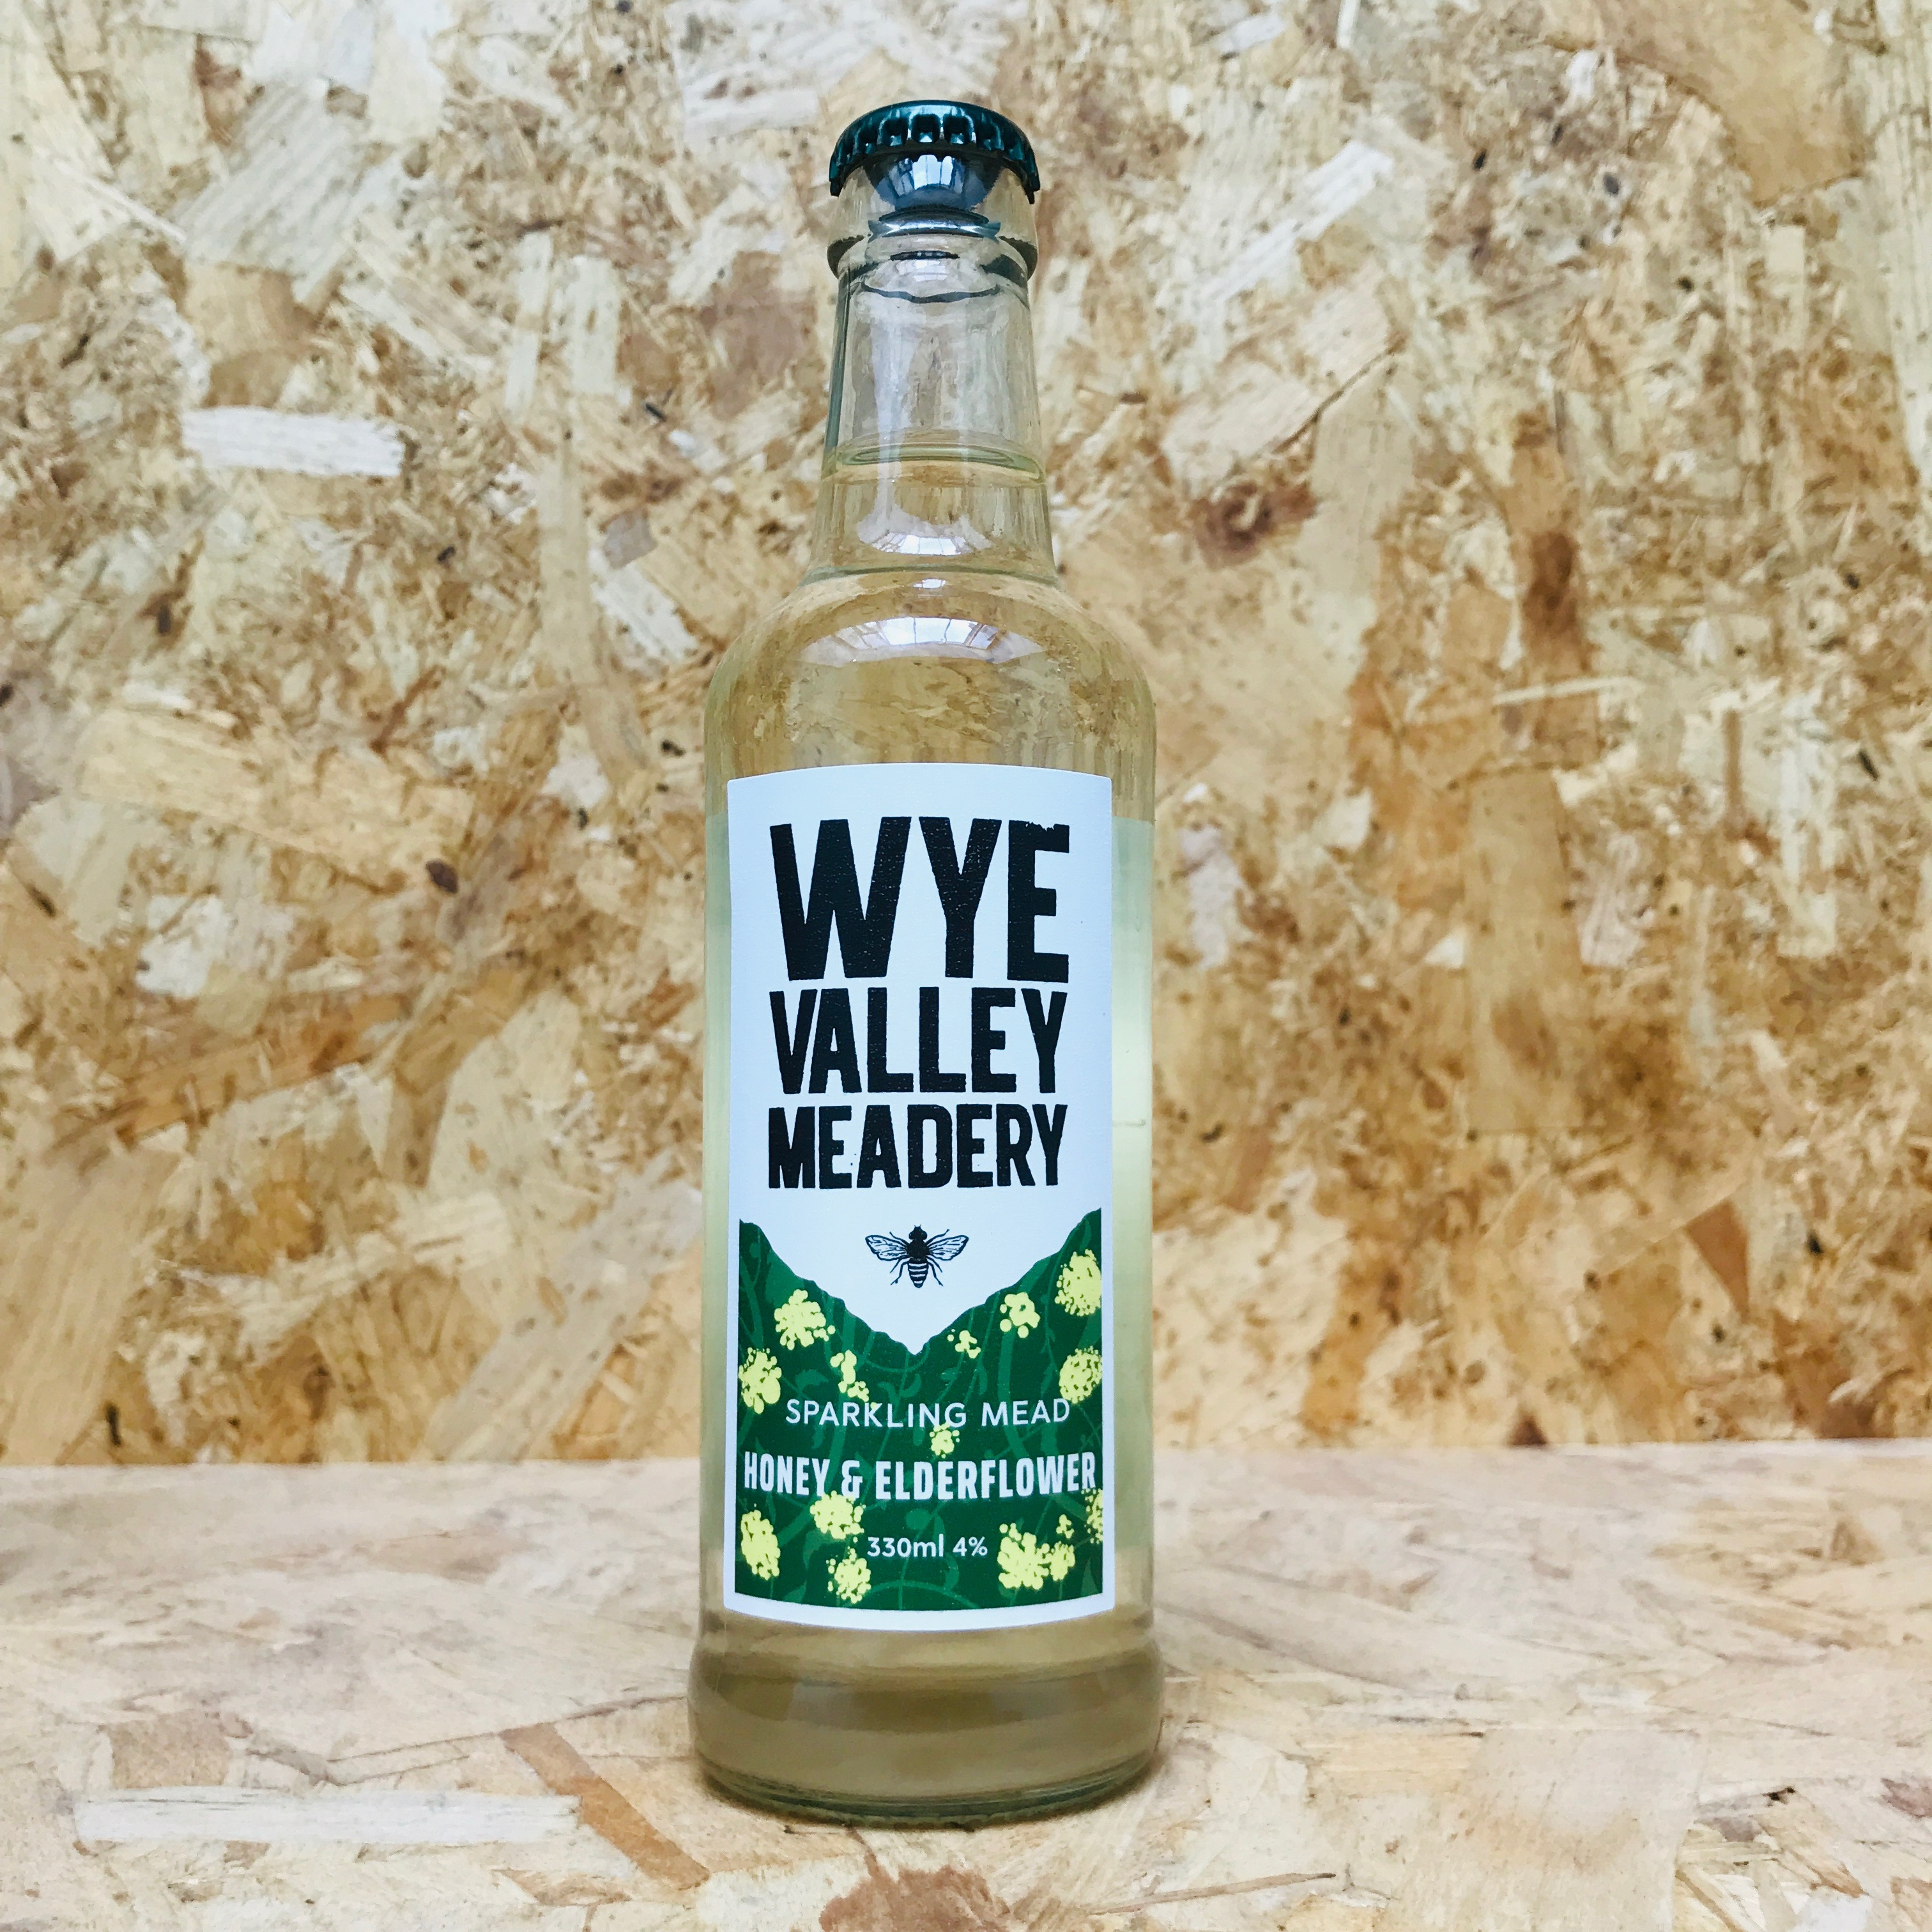 Wye Valley Meadery - Honey & Elderflower